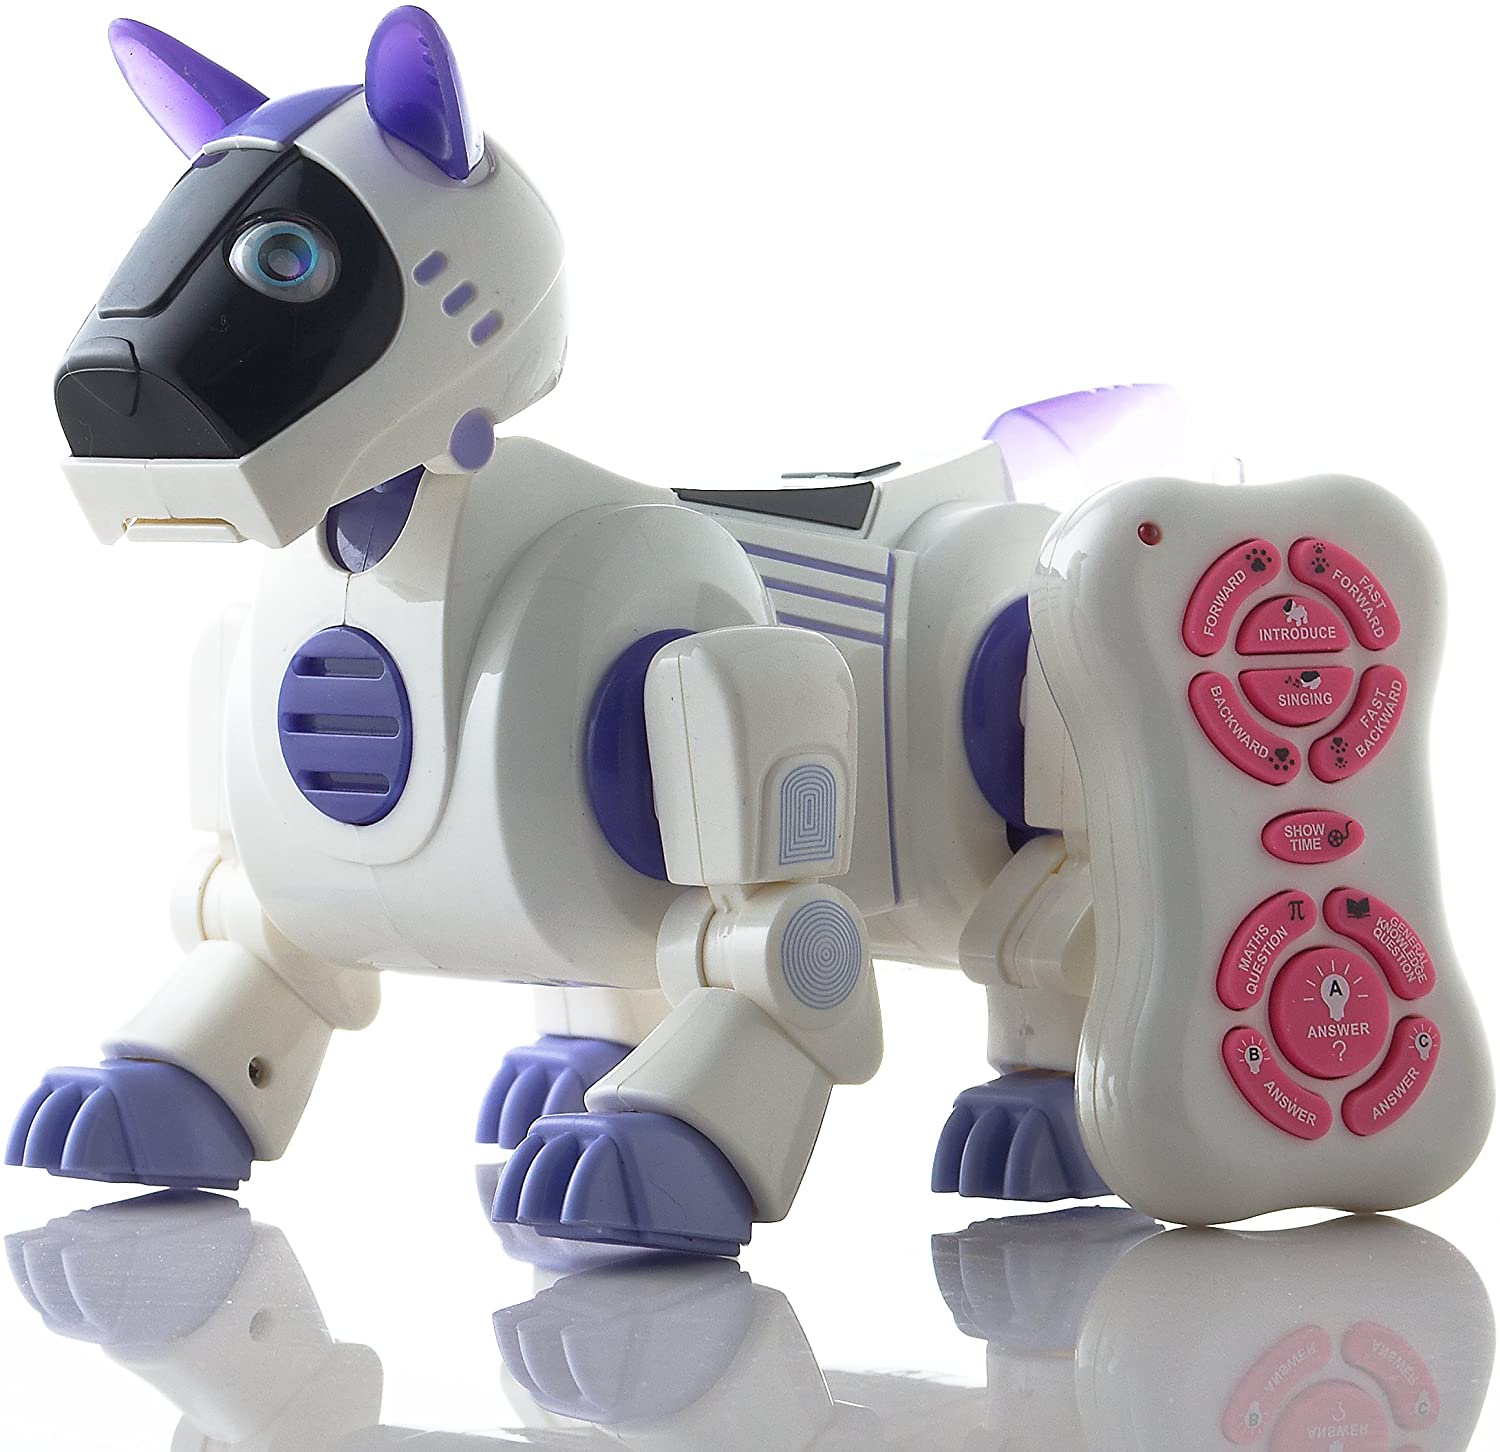 Durherm IR RC Smart Storytelling Sing Dance Walking Talking Dialogue Robot Dog Pet Toy, purple